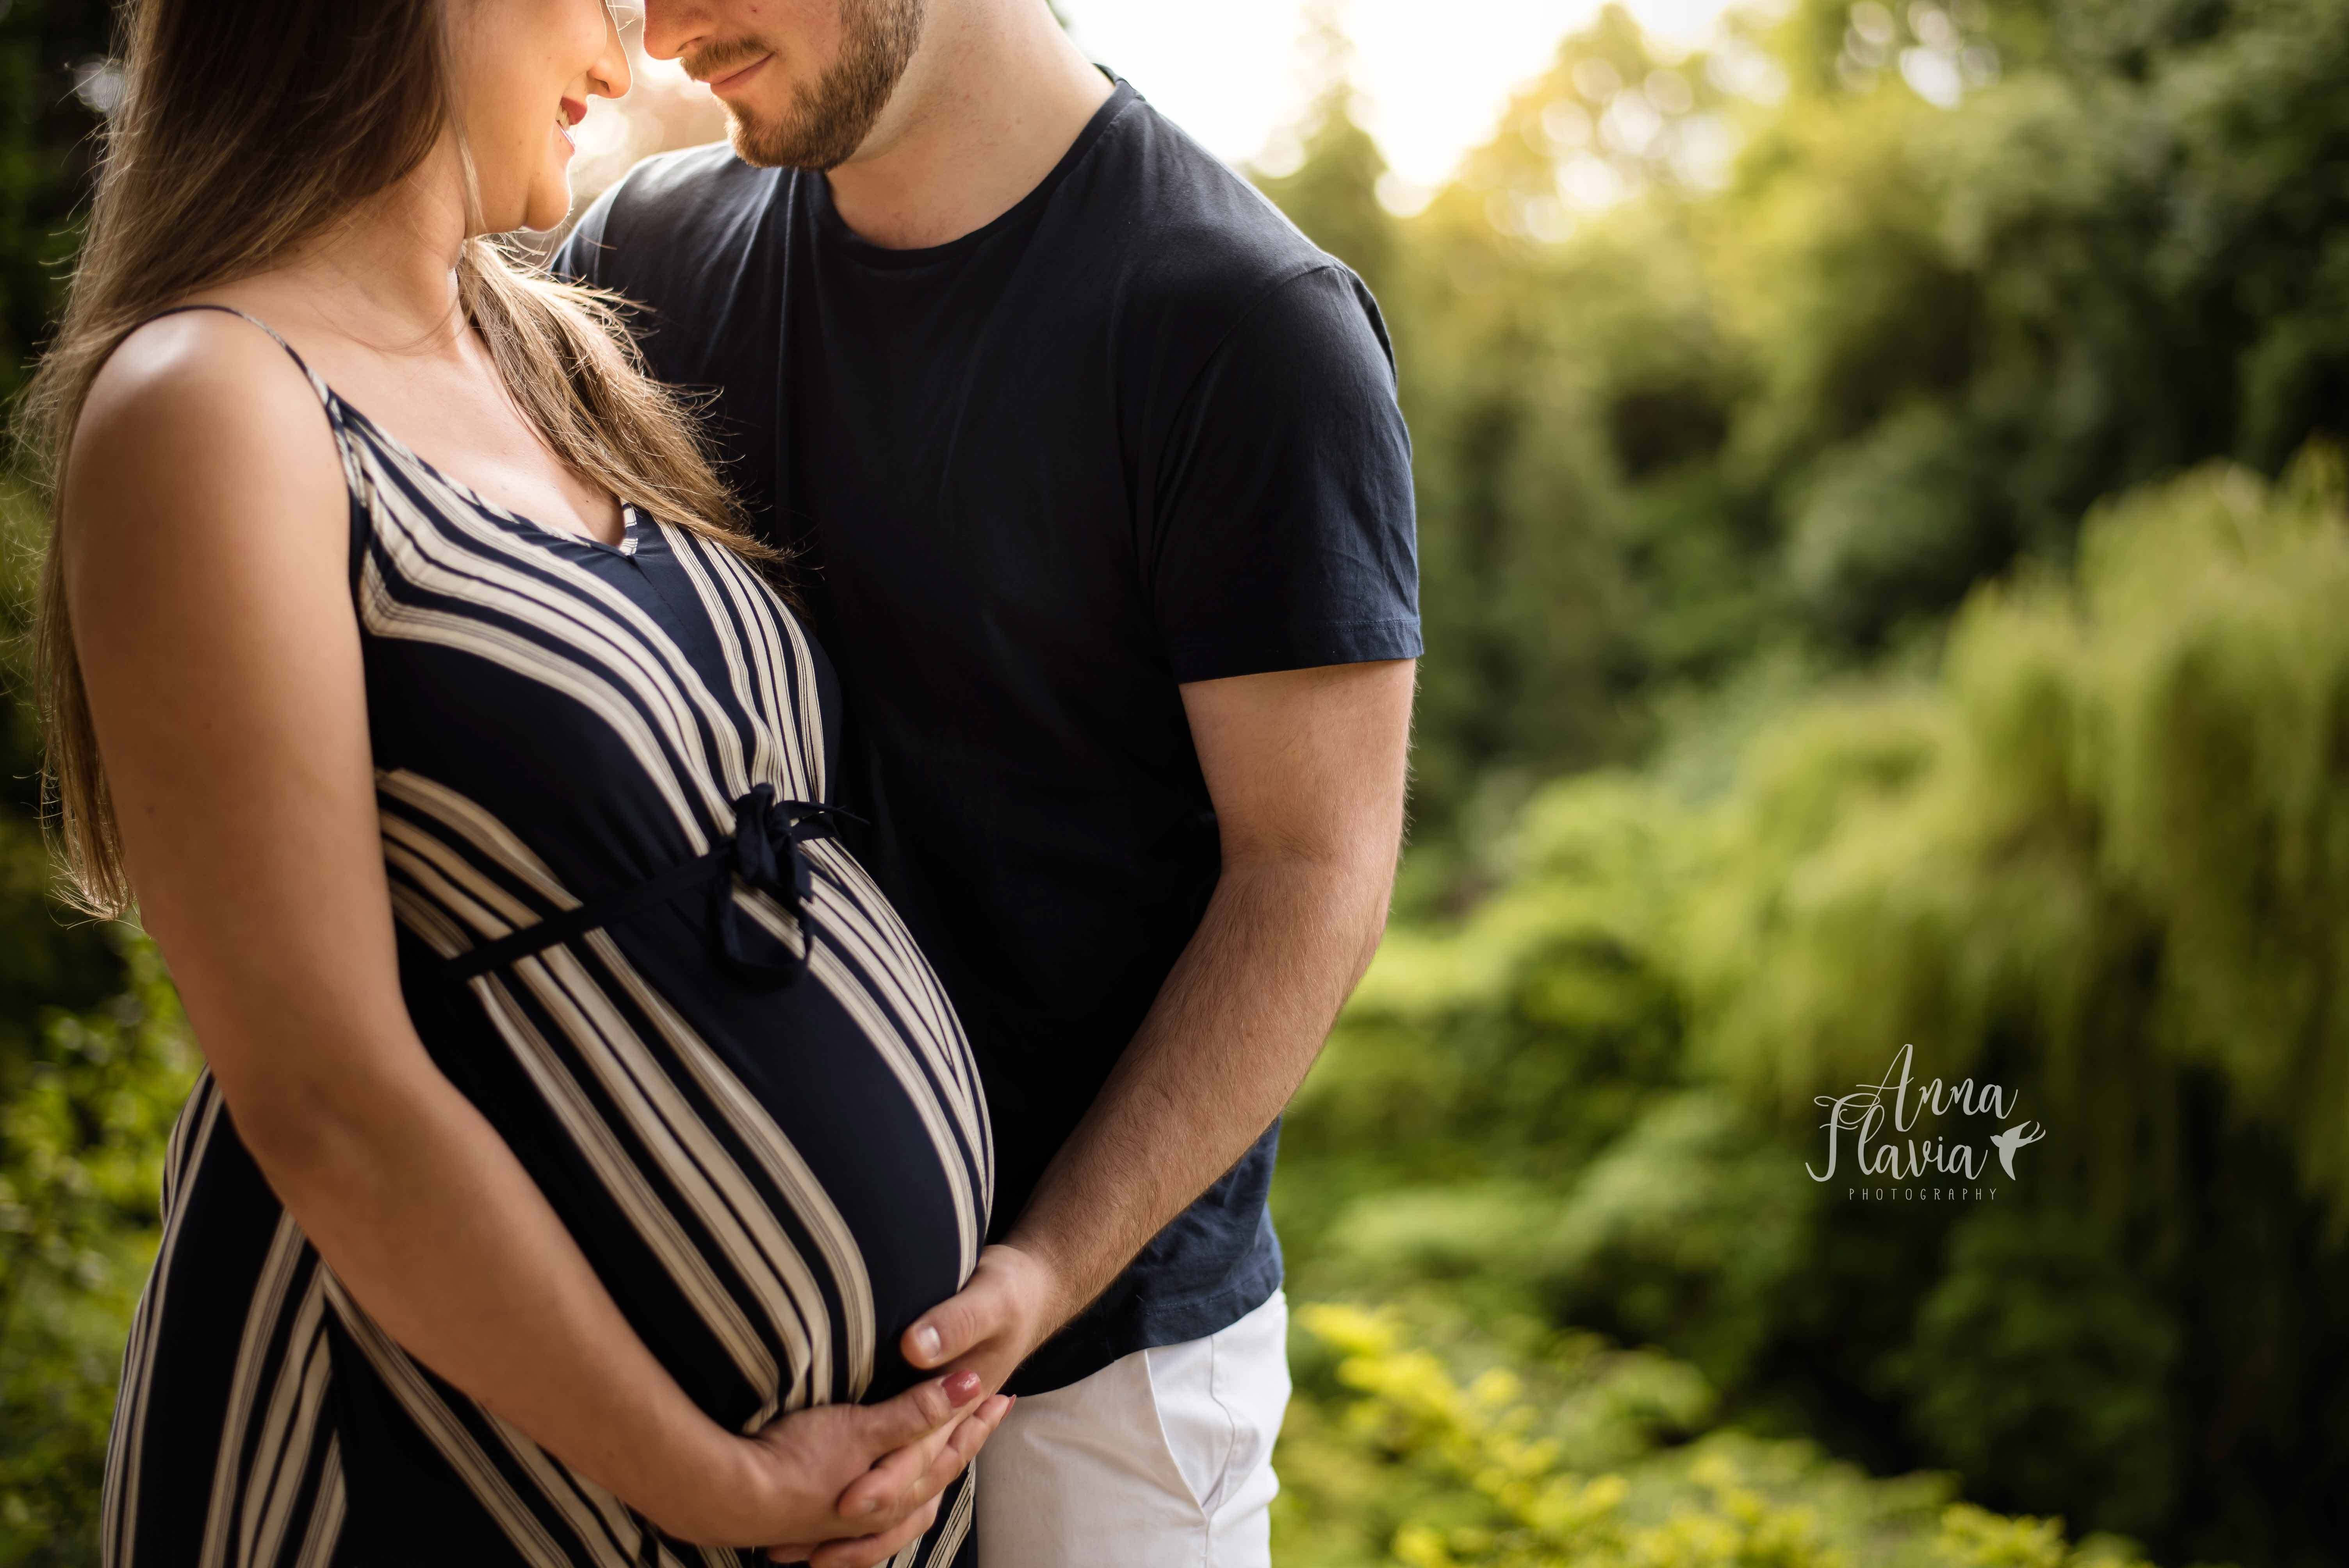 photographer_dublin_anna_flavia_maternity_newborn_family_6